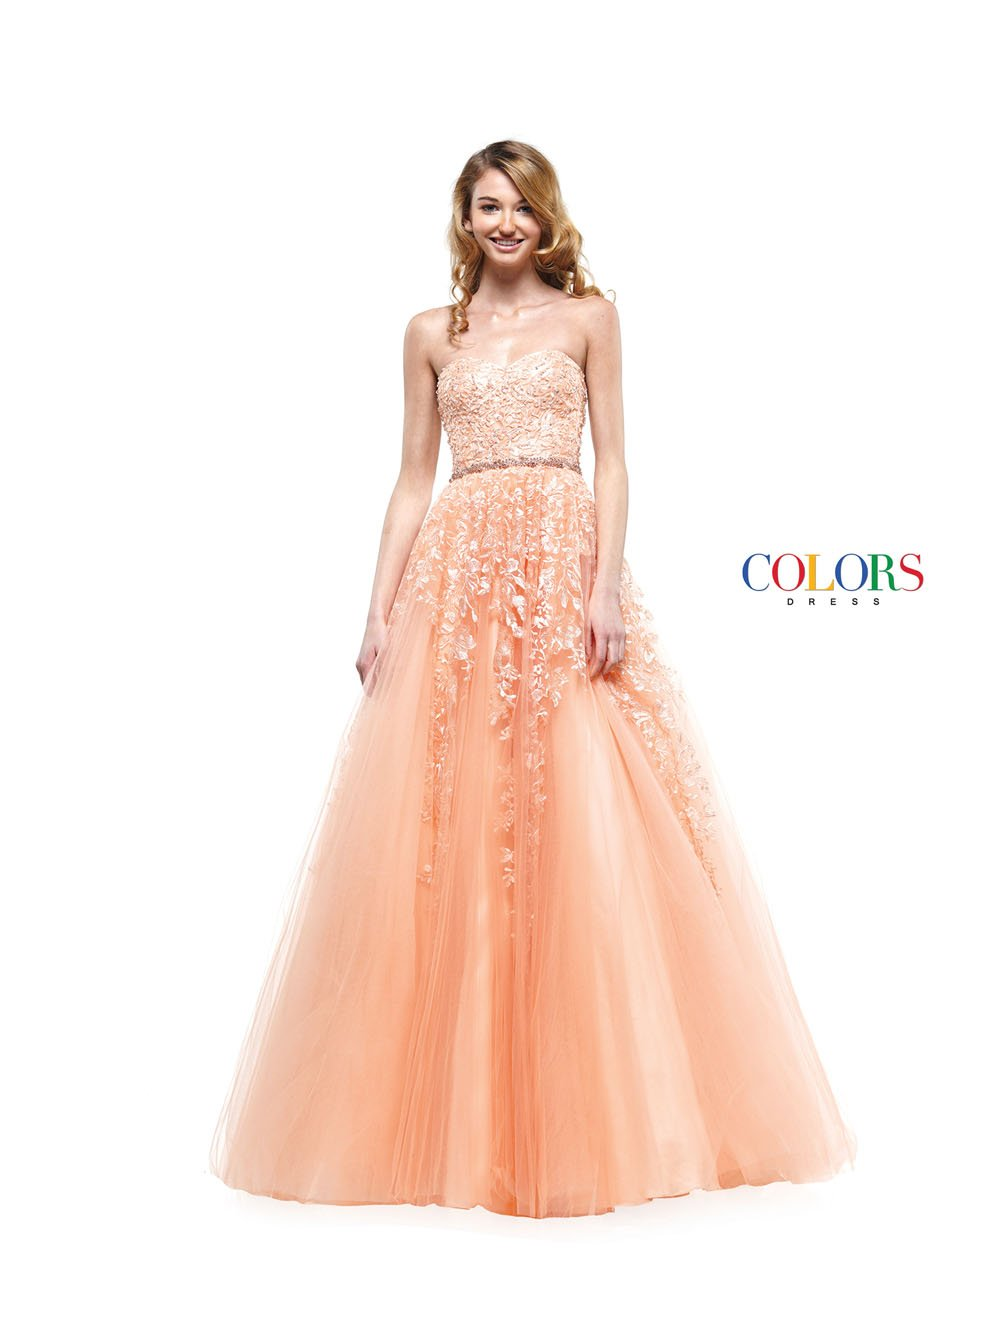 Colors Dress 2154 prom dress images.  Colors 2154 dresses are available in these colors: Apricot, Baby Blue, Off White.